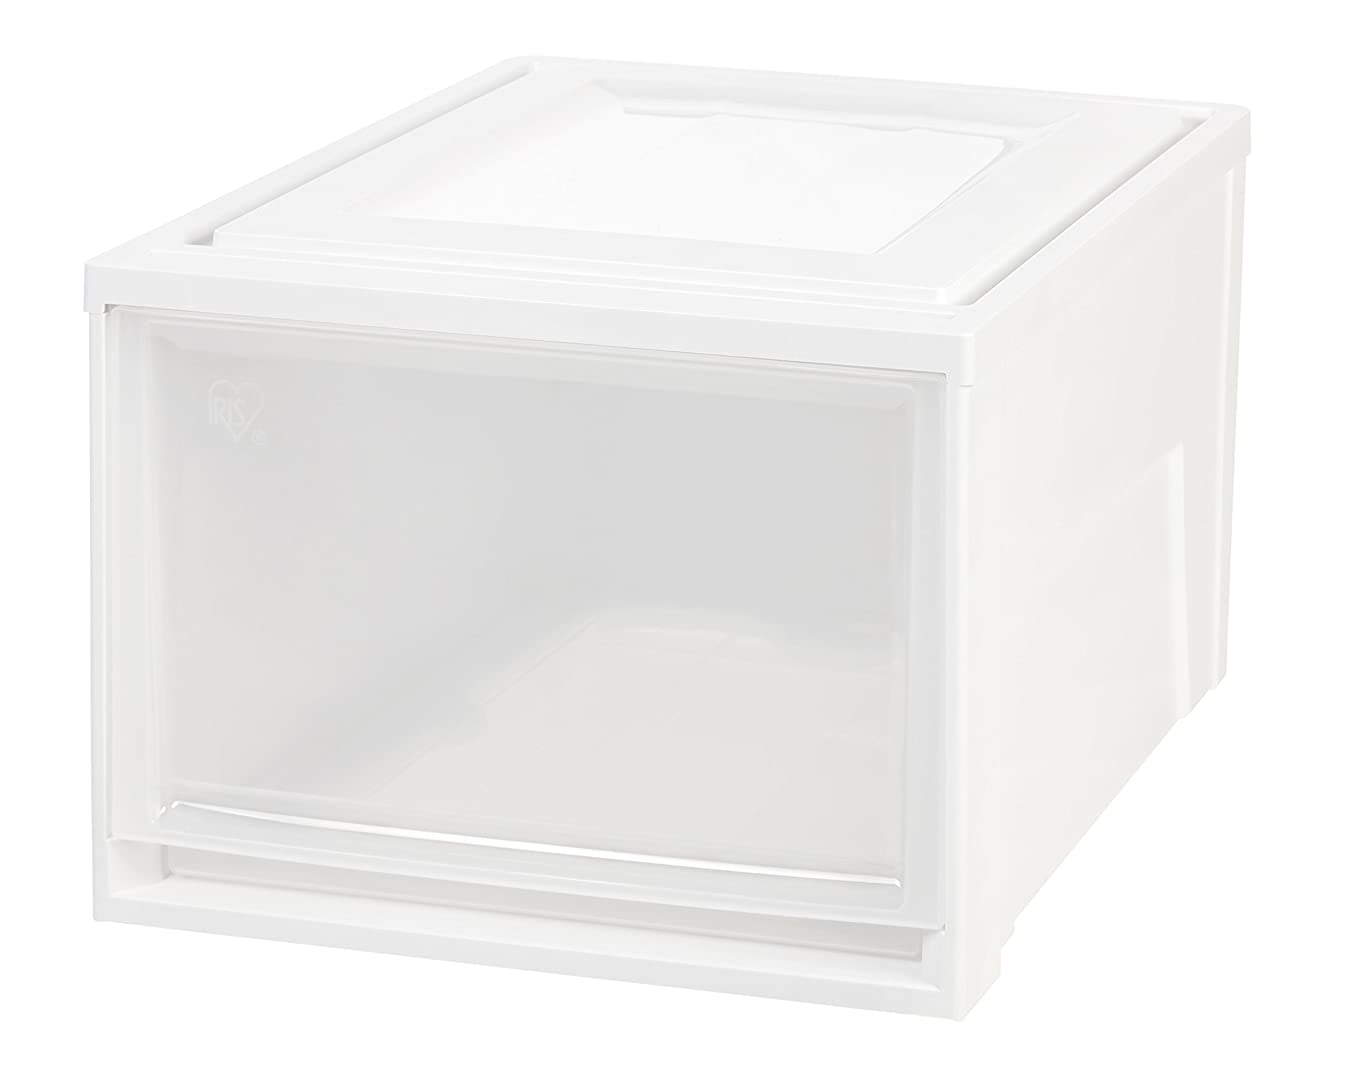 IRIS Deep Box Chest Drawer, White, 3 Pack